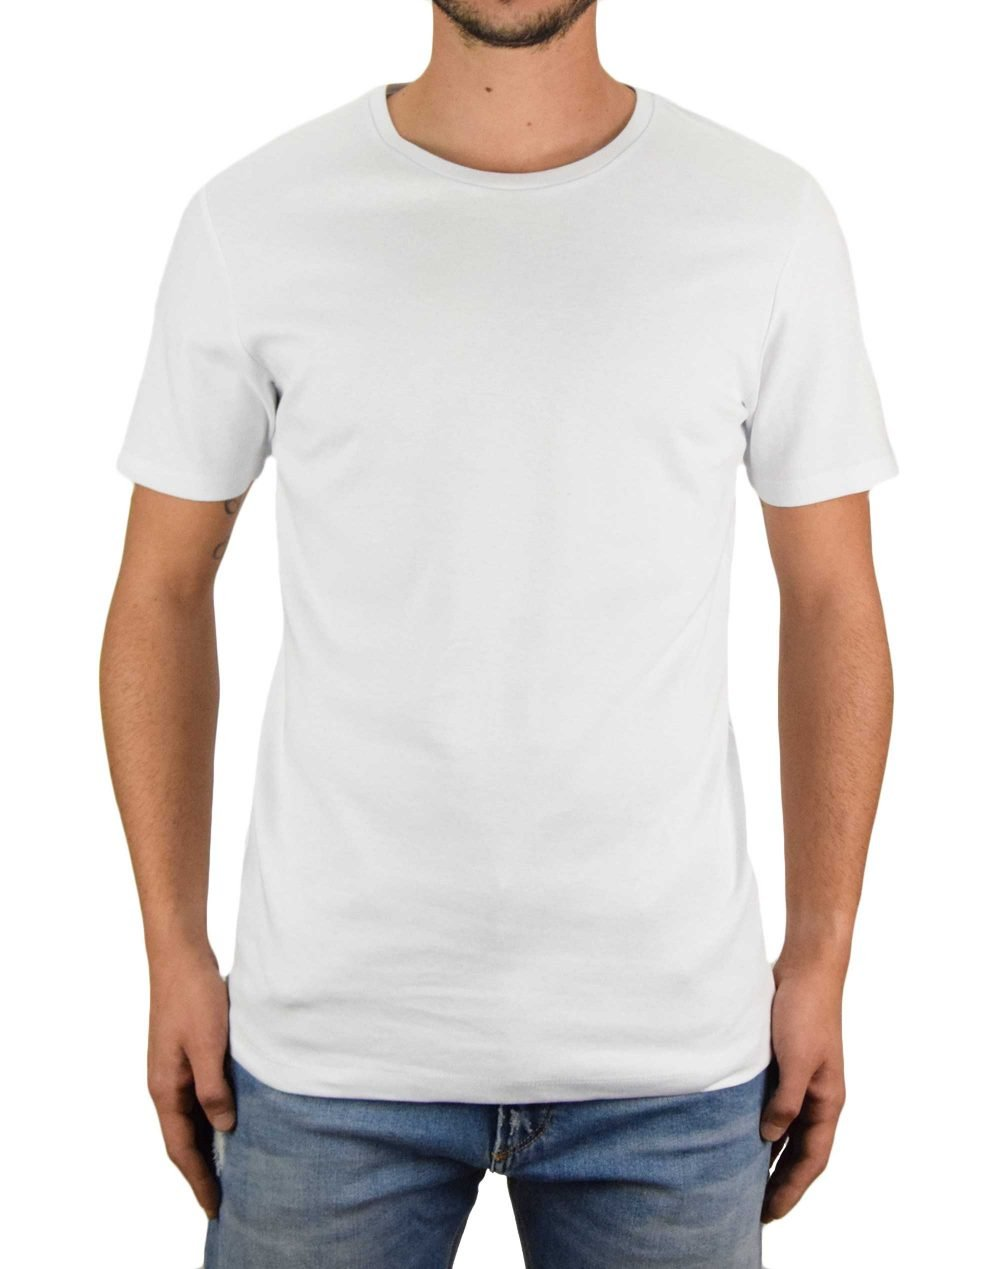 Jack & Jones Zip Tee Slim Fit (12174743) White